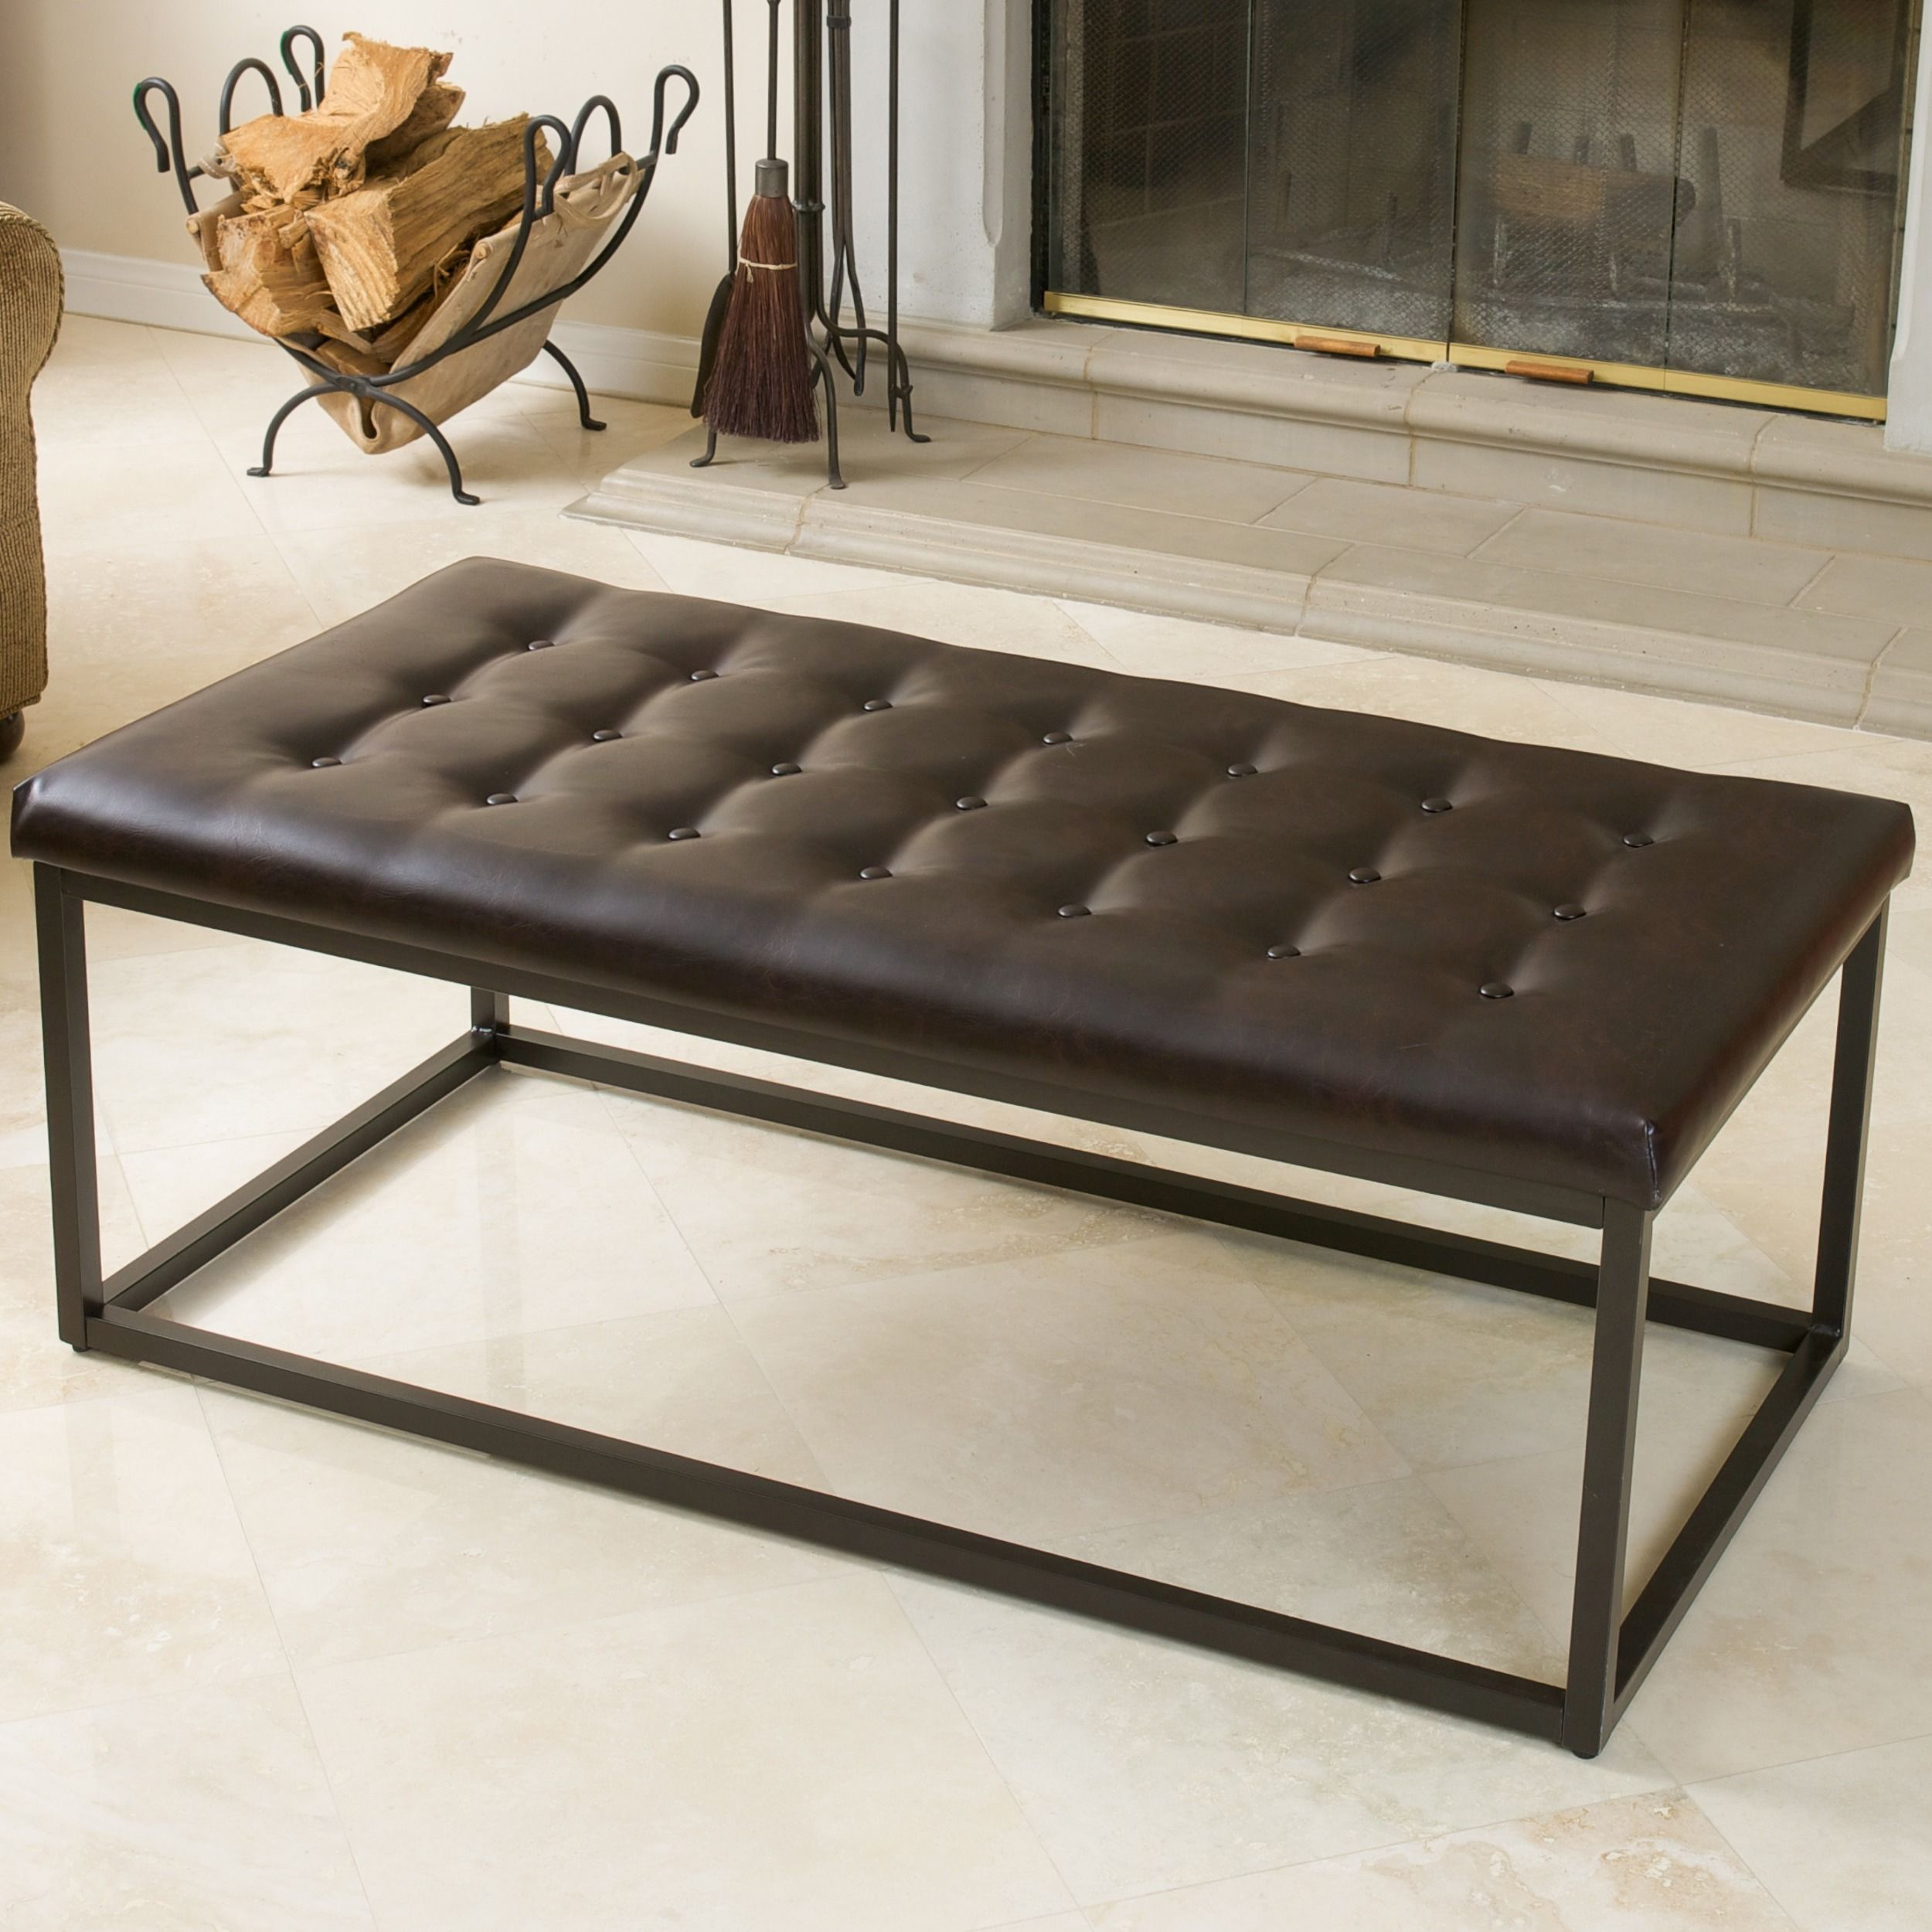 Our Best Living Room Furniture Deals Living Room Sofa Set Leather Coffee Table Furniture [ 2500 x 2500 Pixel ]